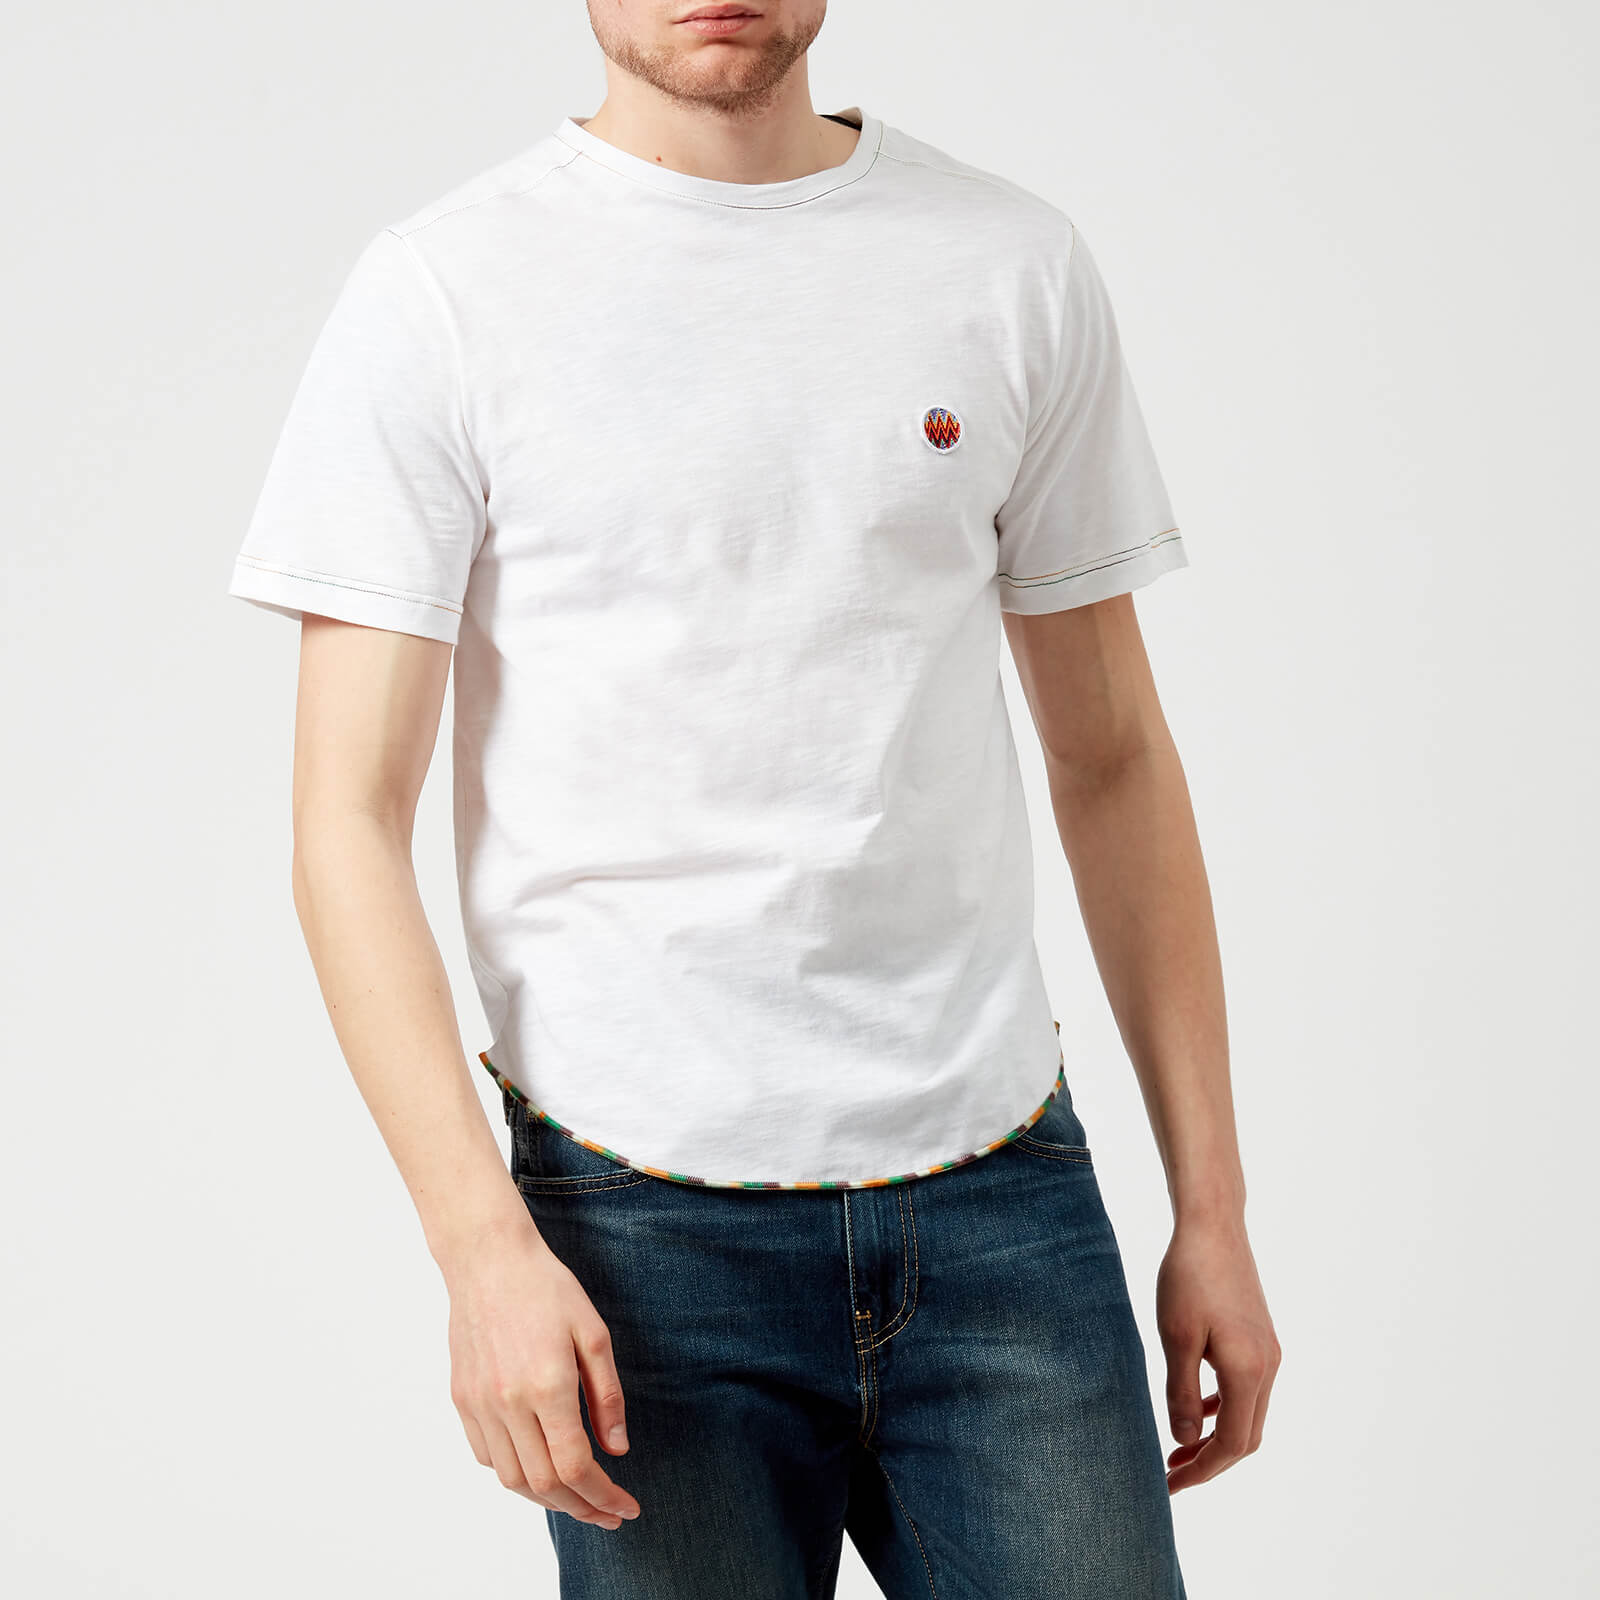 a72615271489 Missoni Men s Small Logo T-Shirt - White - Free UK Delivery over £50